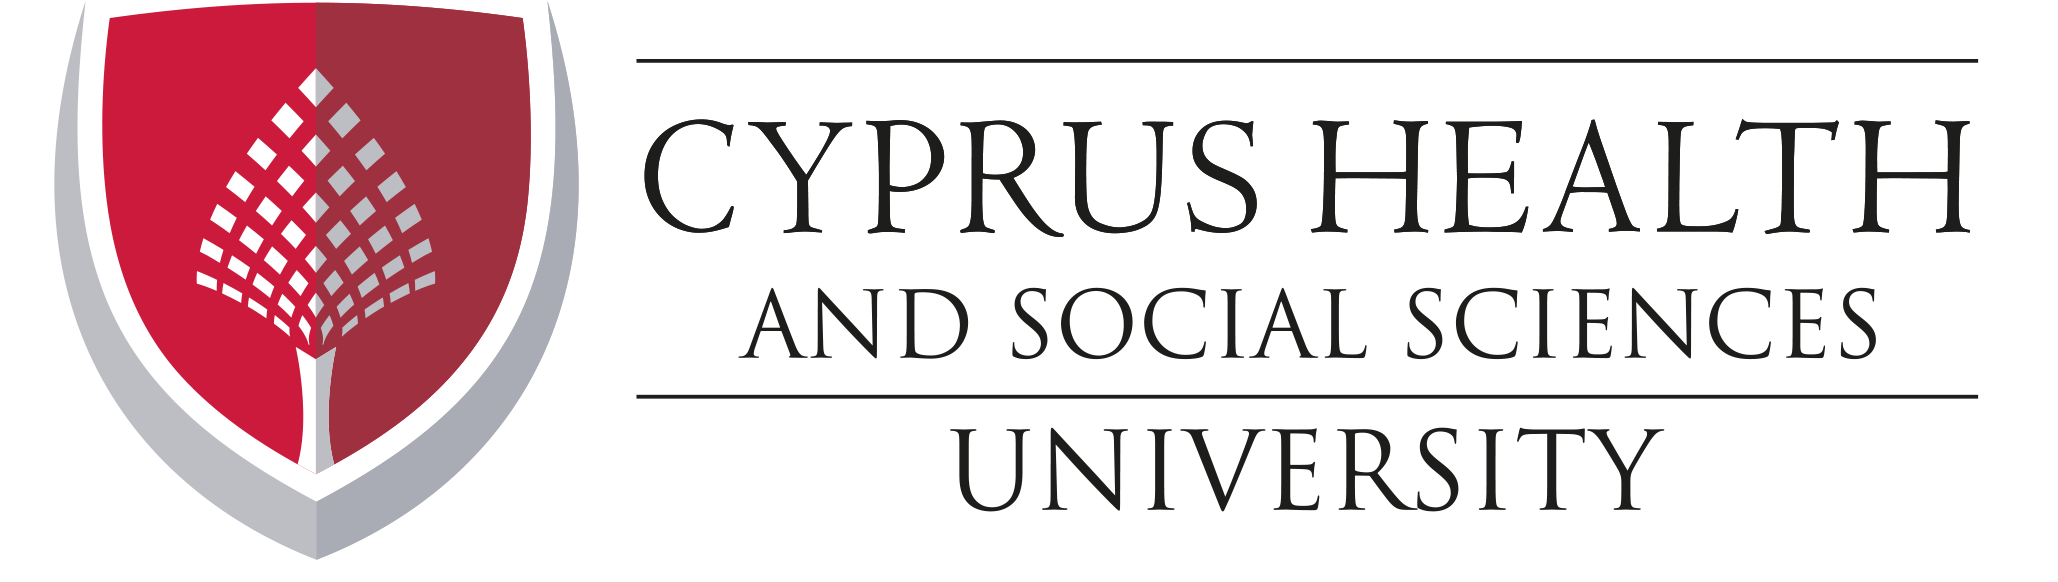 International Relations Office - Cyprus Health and Social Sciences University logo